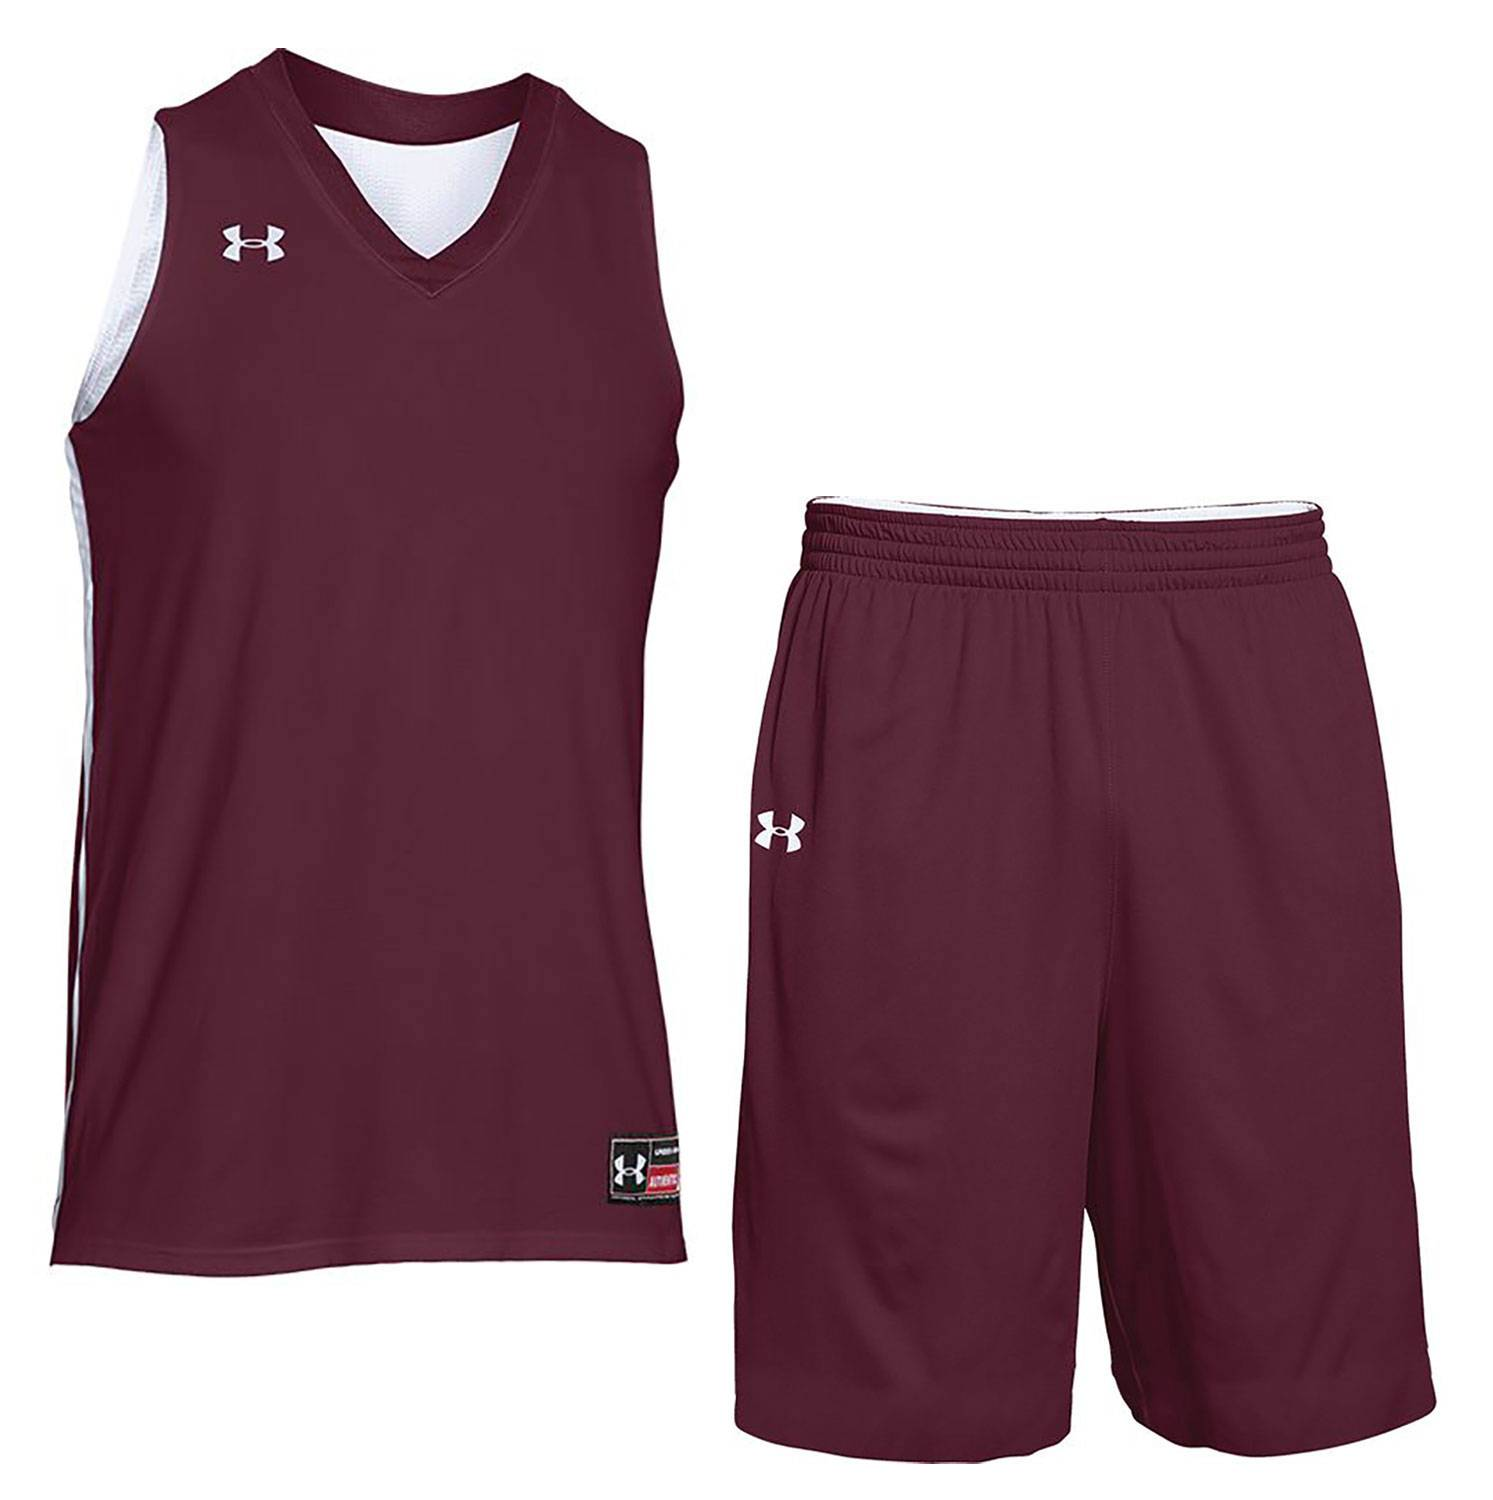 Under armour men drop step custom reversible basketball uniform jpg  1493x1500 Maroon basketball jersey shorts 115e2e5a3